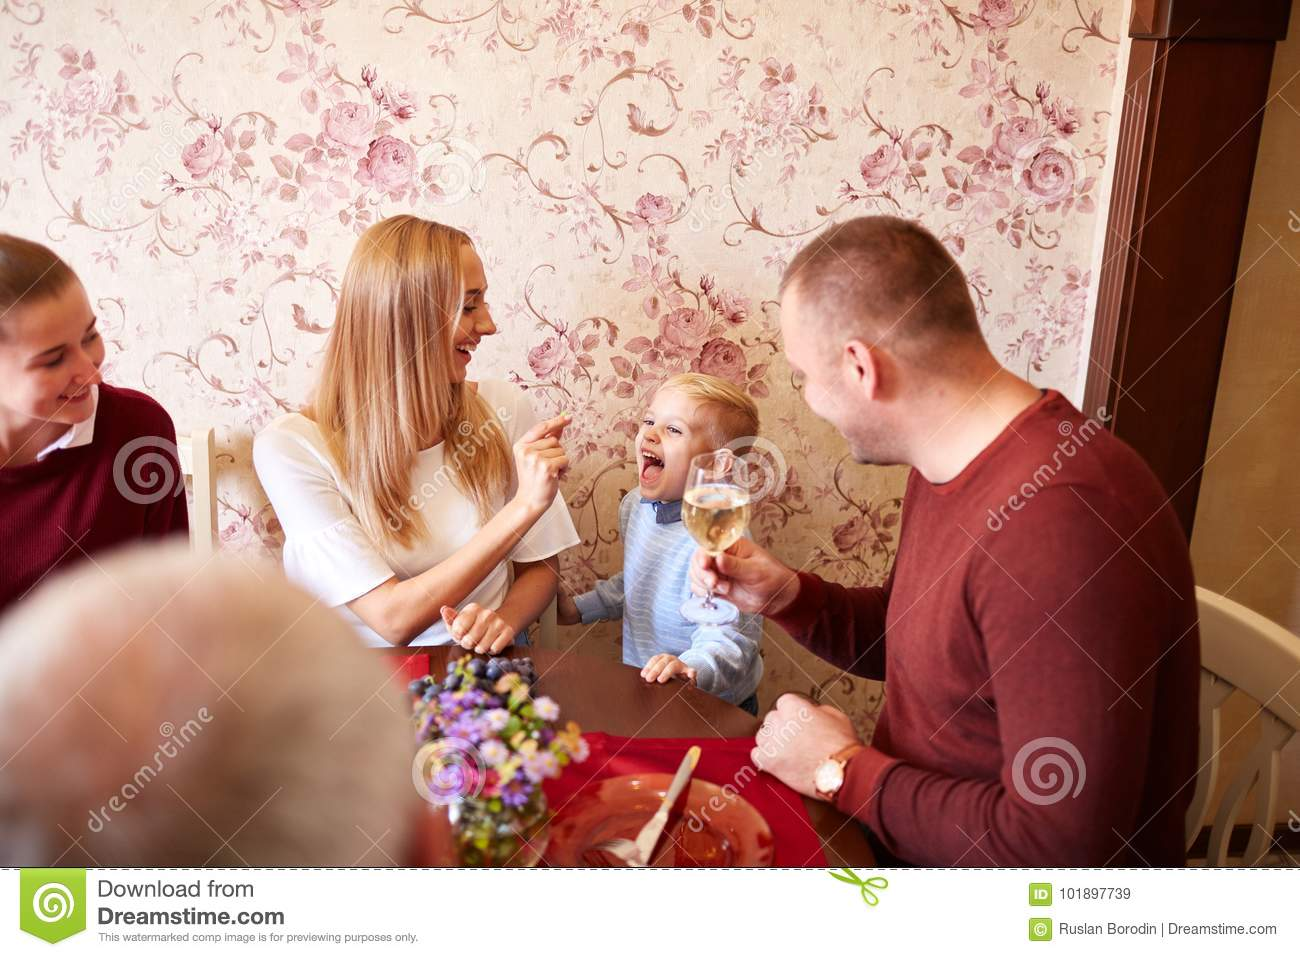 Happy mom and son at the Christmas or Thanksgiving dinner on a festive background. Family bonding concept.